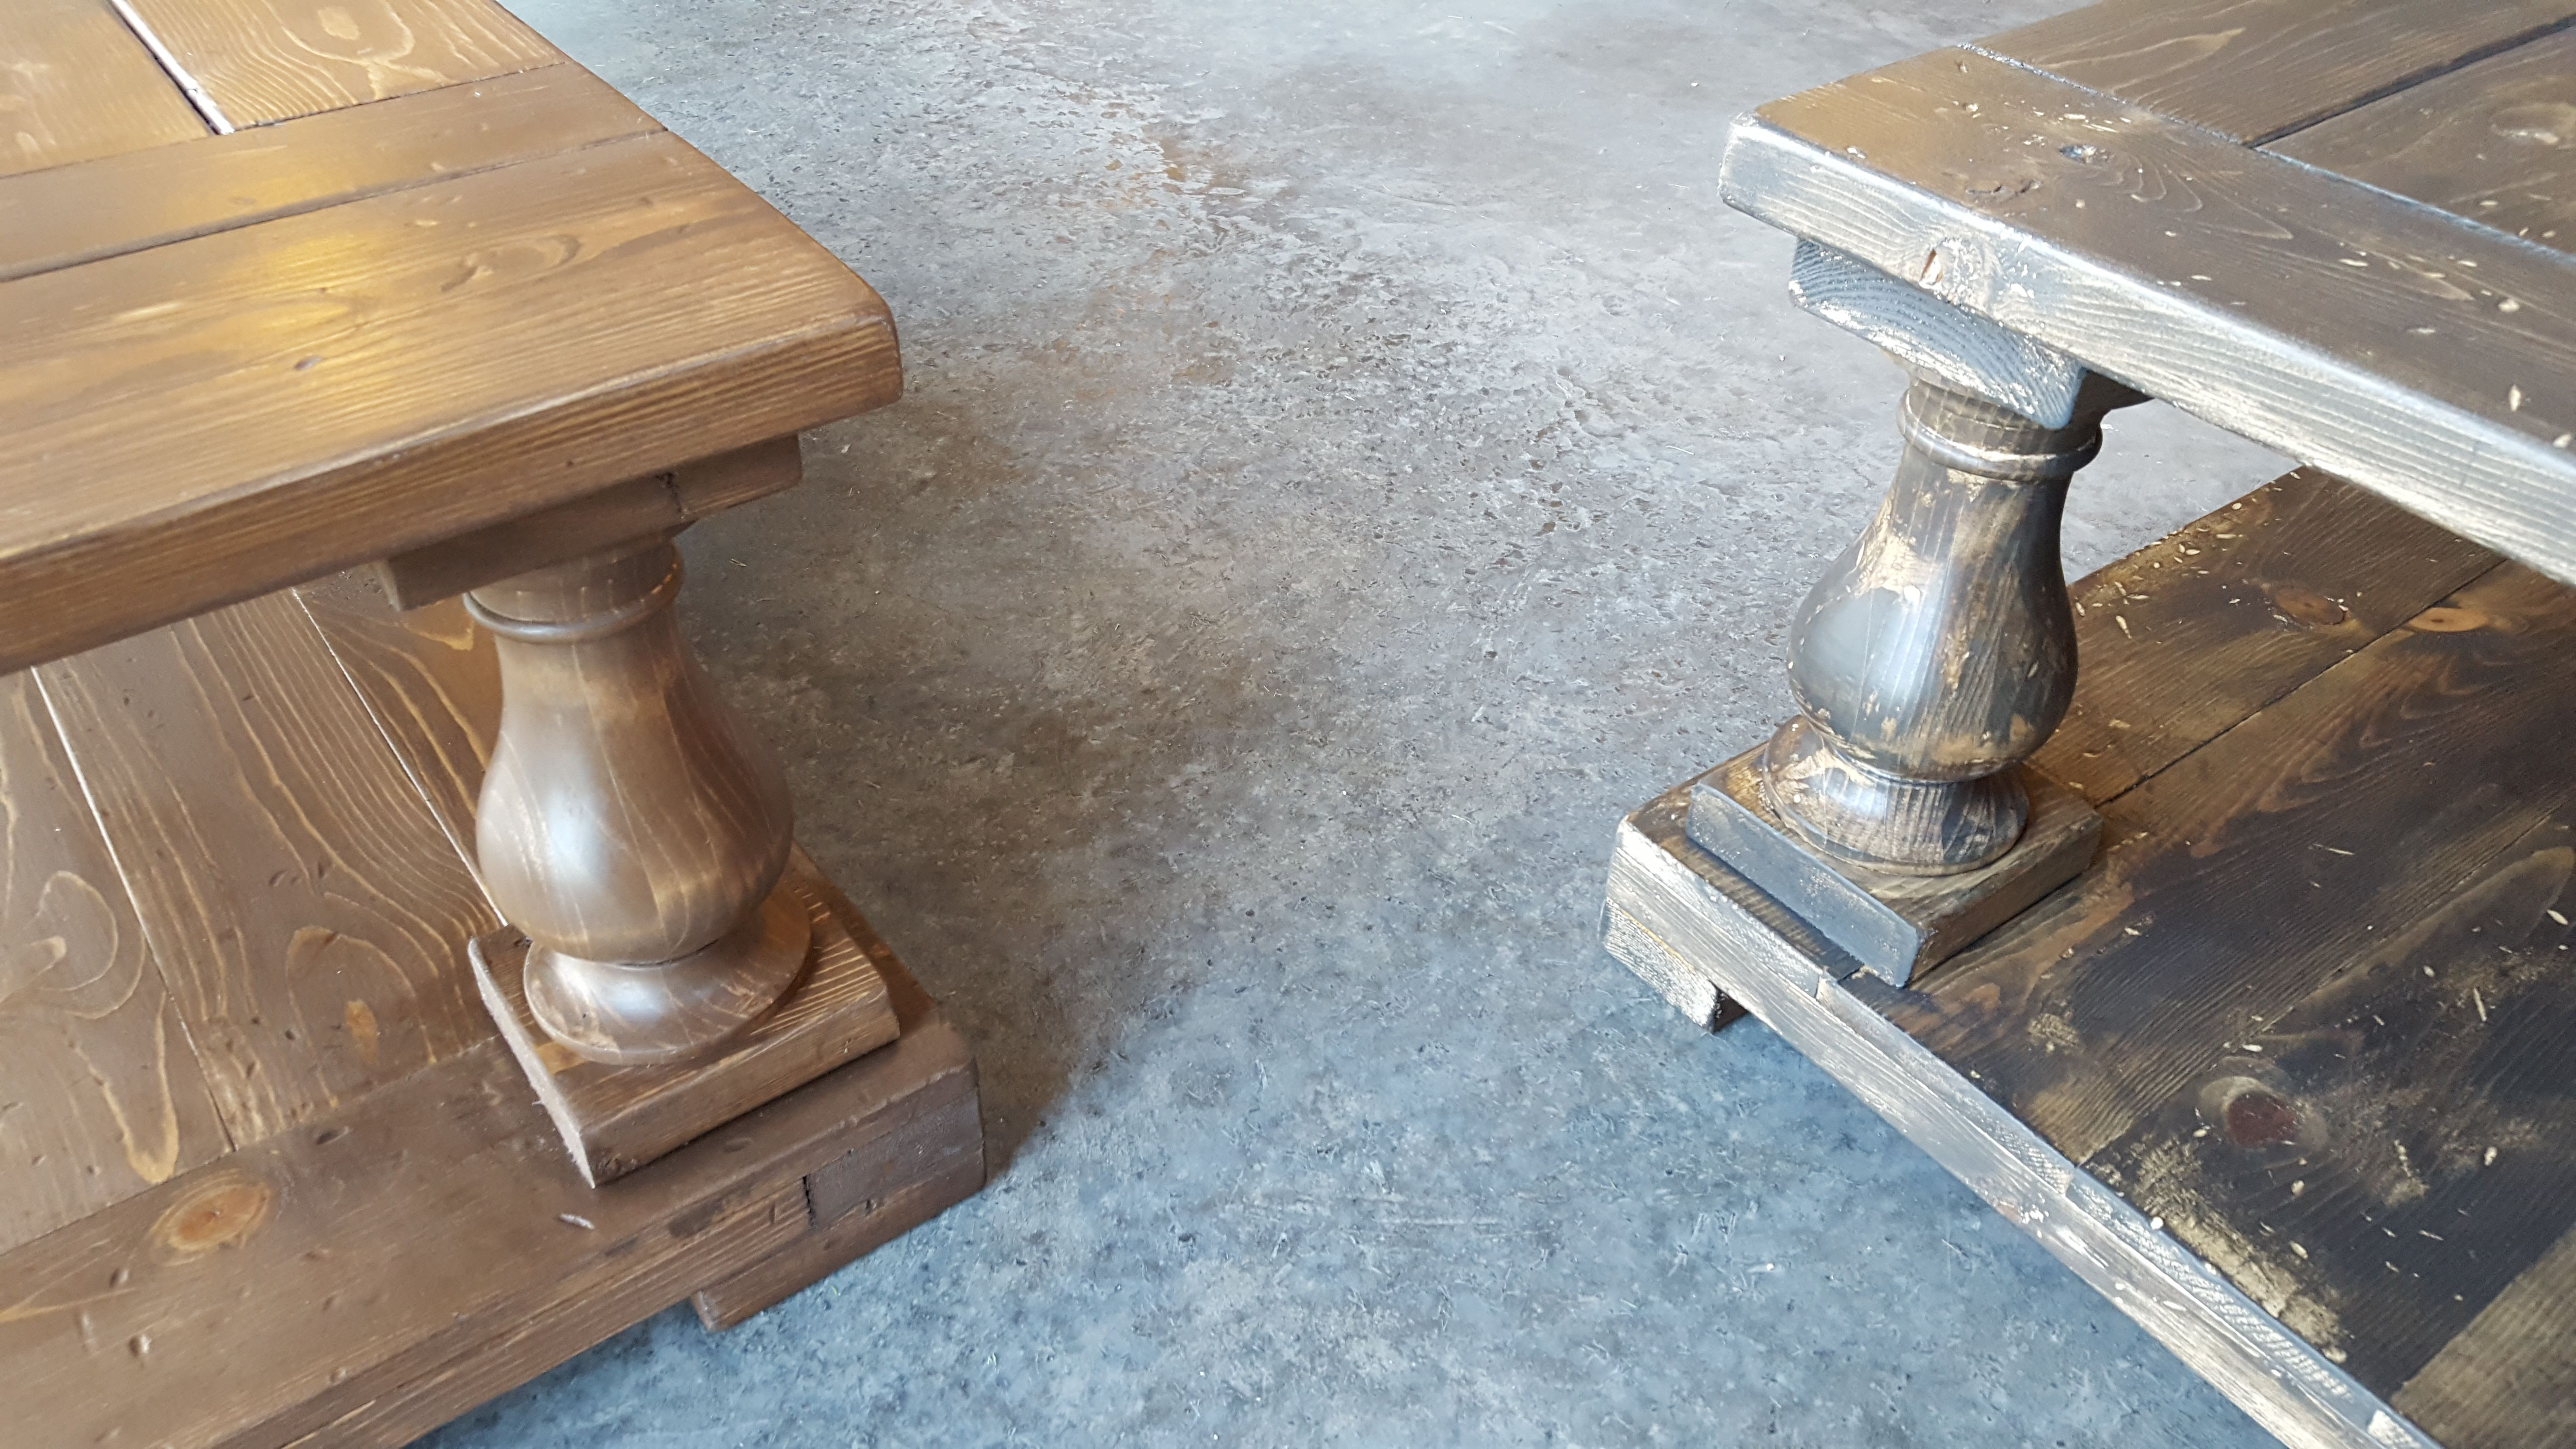 THese custom coffee tables were built for a Parade of Homes last